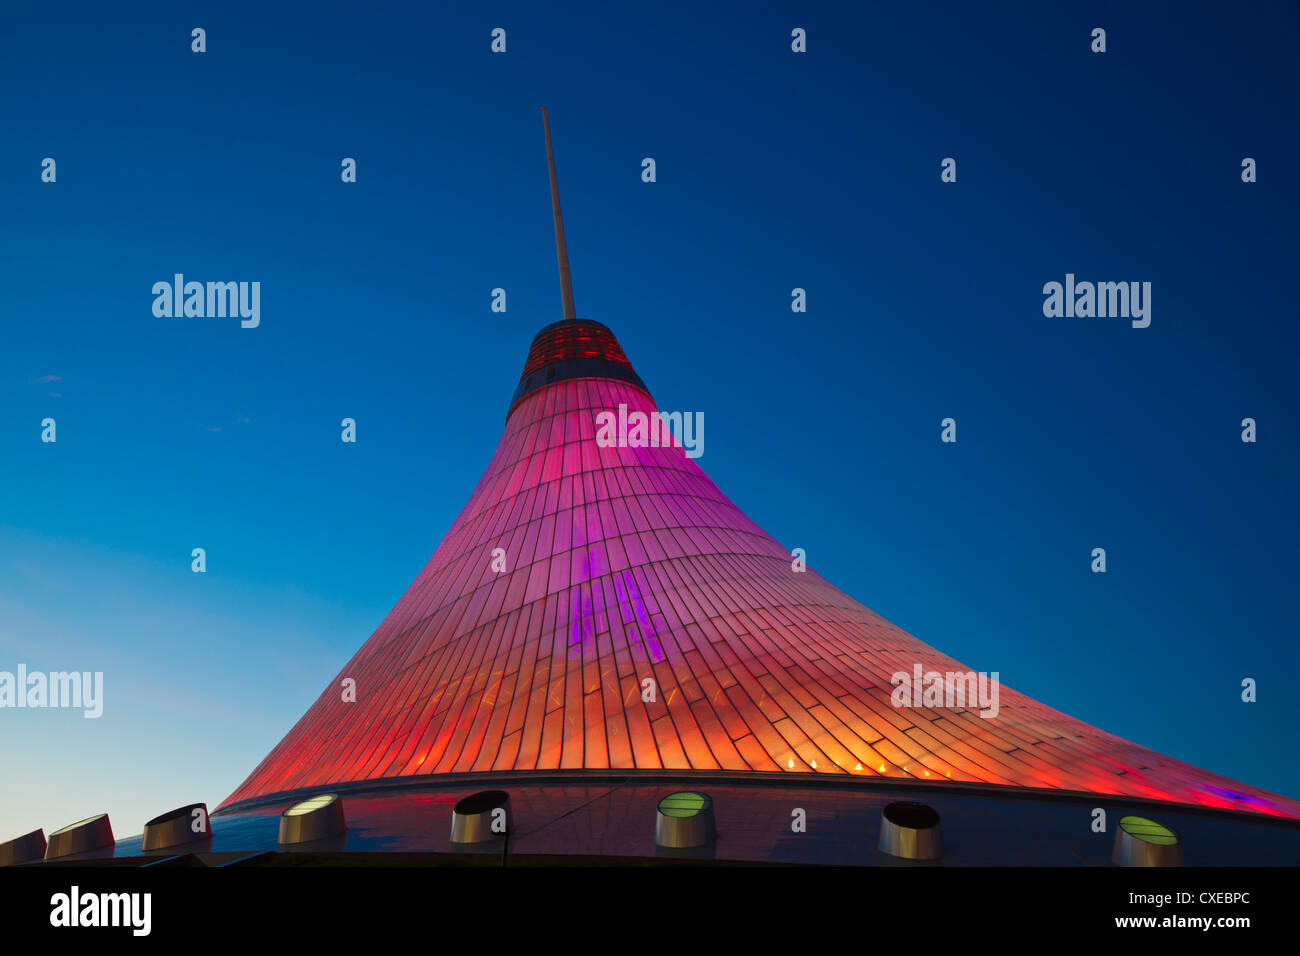 Khan Shatyr shopping and entertainment center at night, Astana, Kazakhstan, Central Asia, Asia - Stock Image